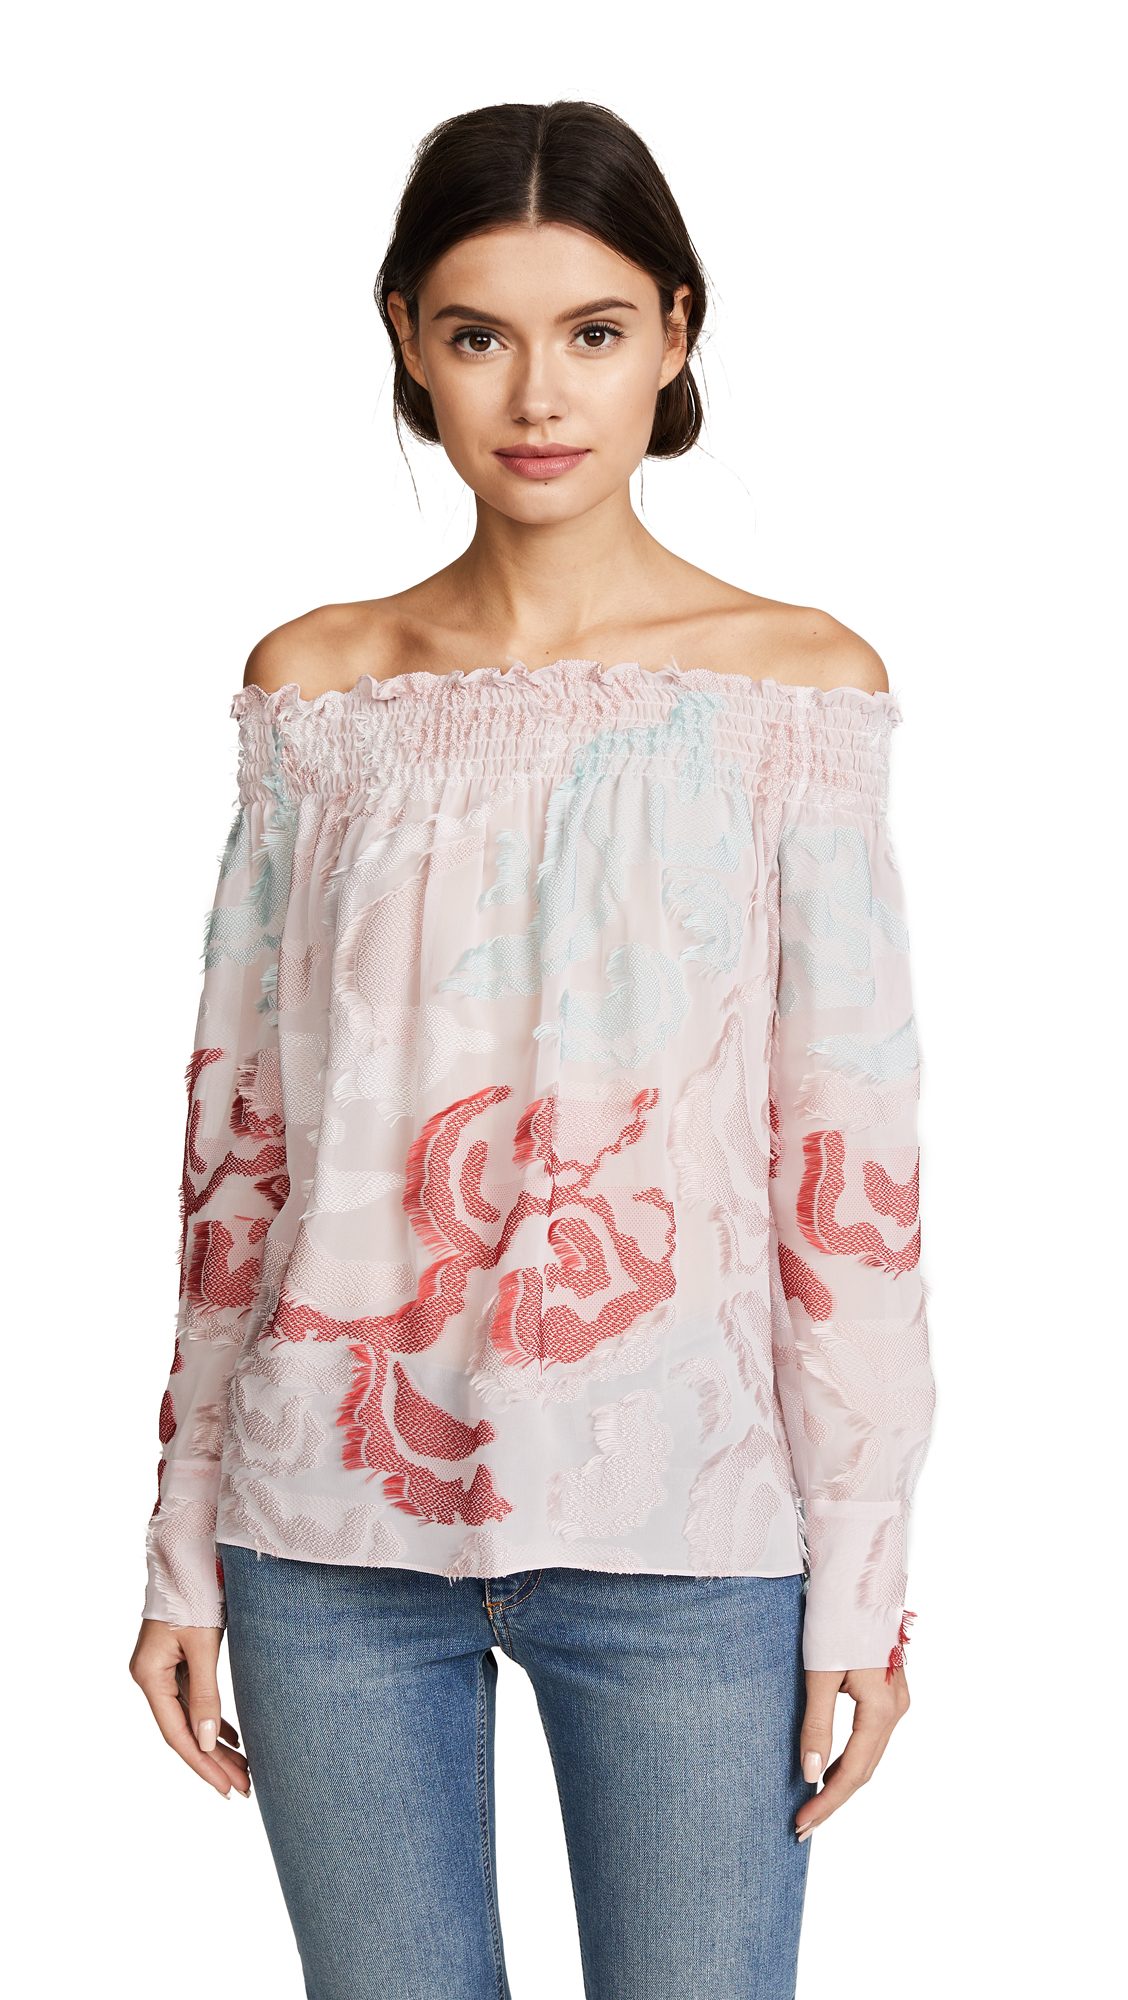 Yigal Azrouel Off the Shoulder Smocking Top - Blush Multi